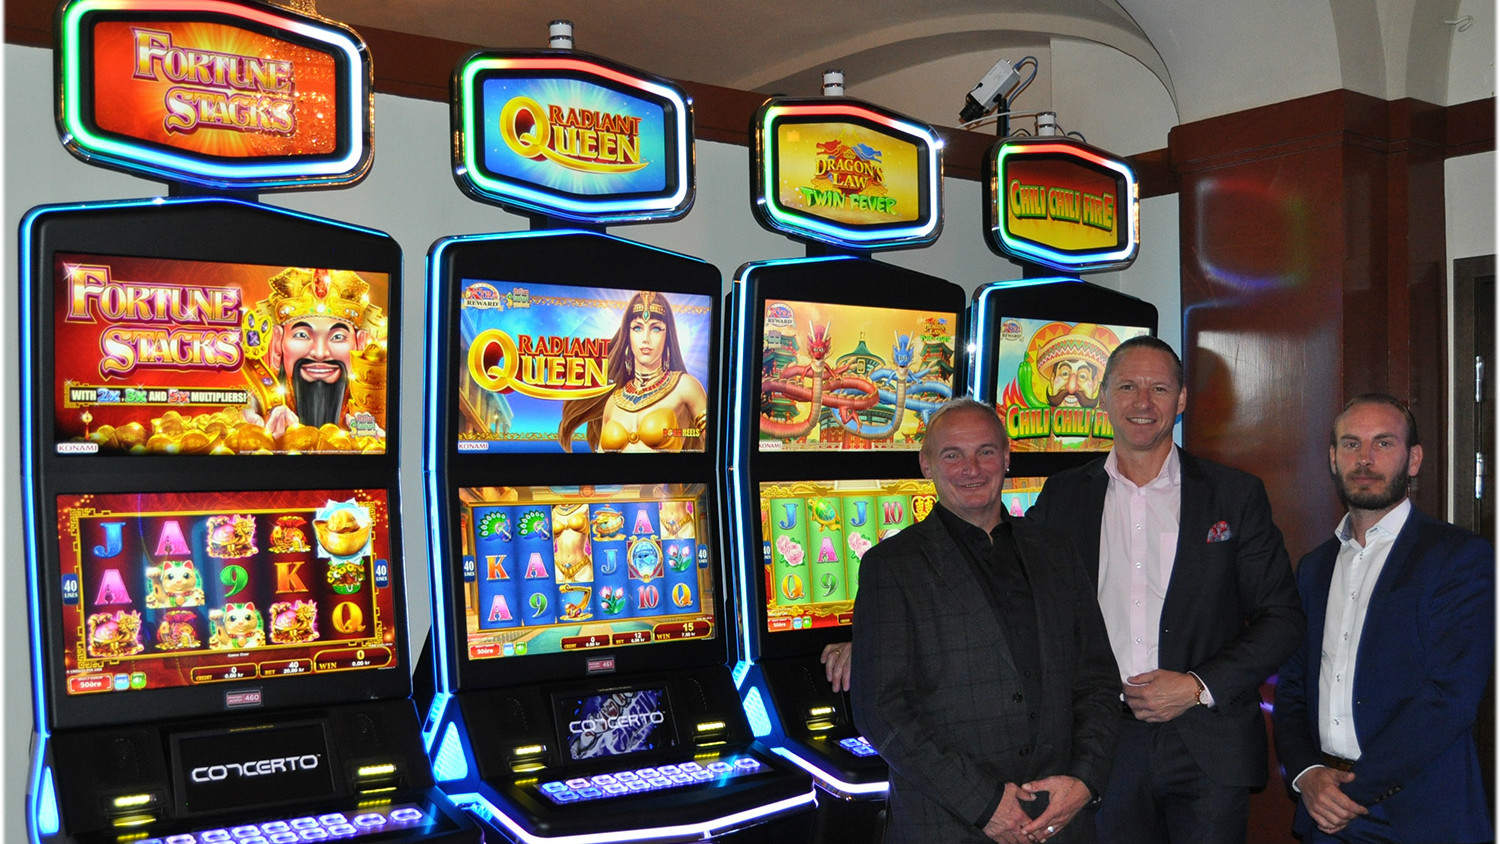 Konami debuts latest video slots in Sweden and Latvia - Casino Review